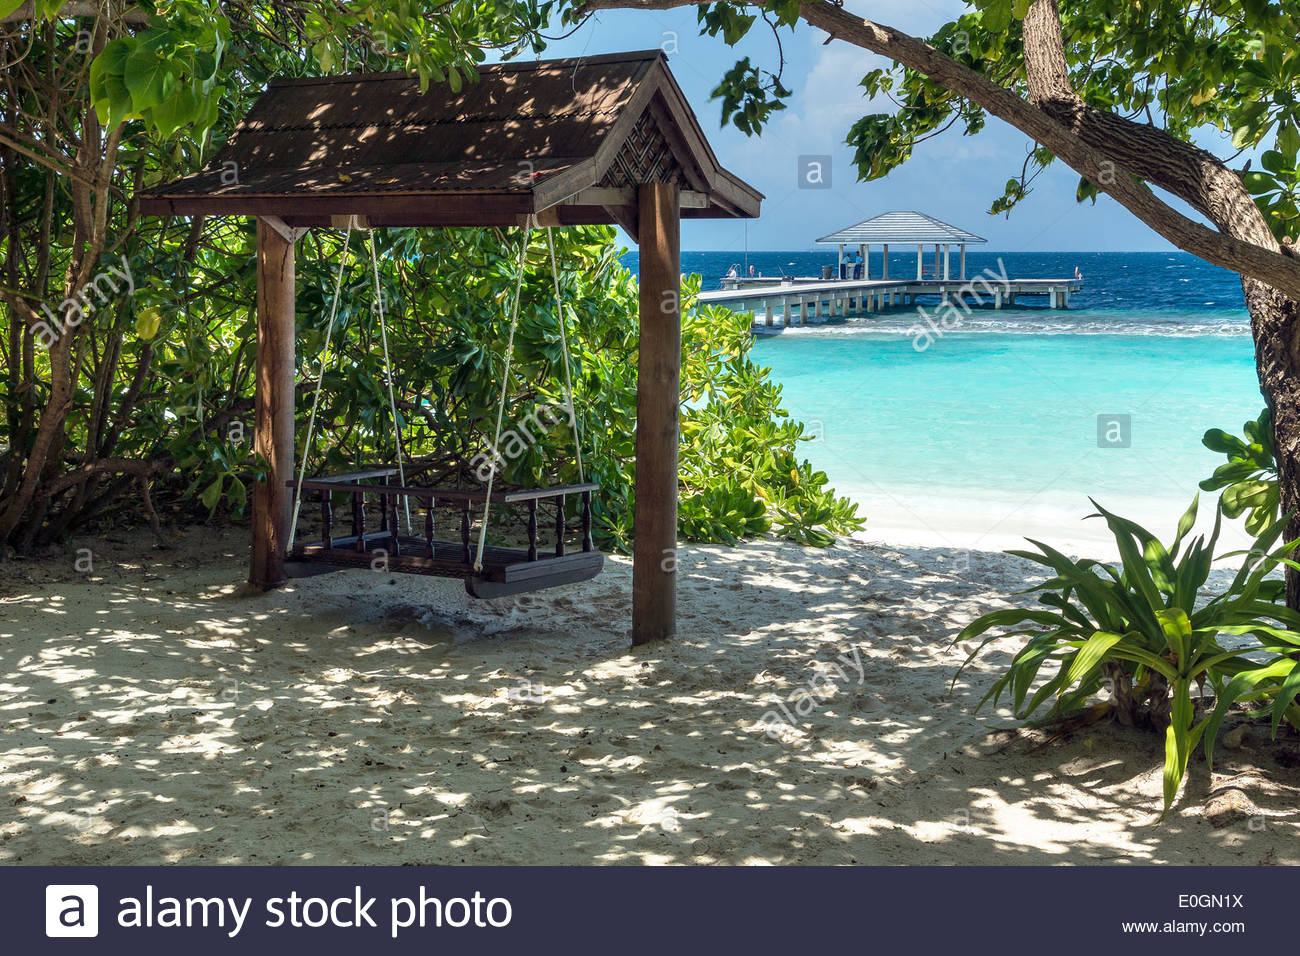 Maldives : Royal Island resort and spa on Horubadhoo island - Baa atoll - Stock Image